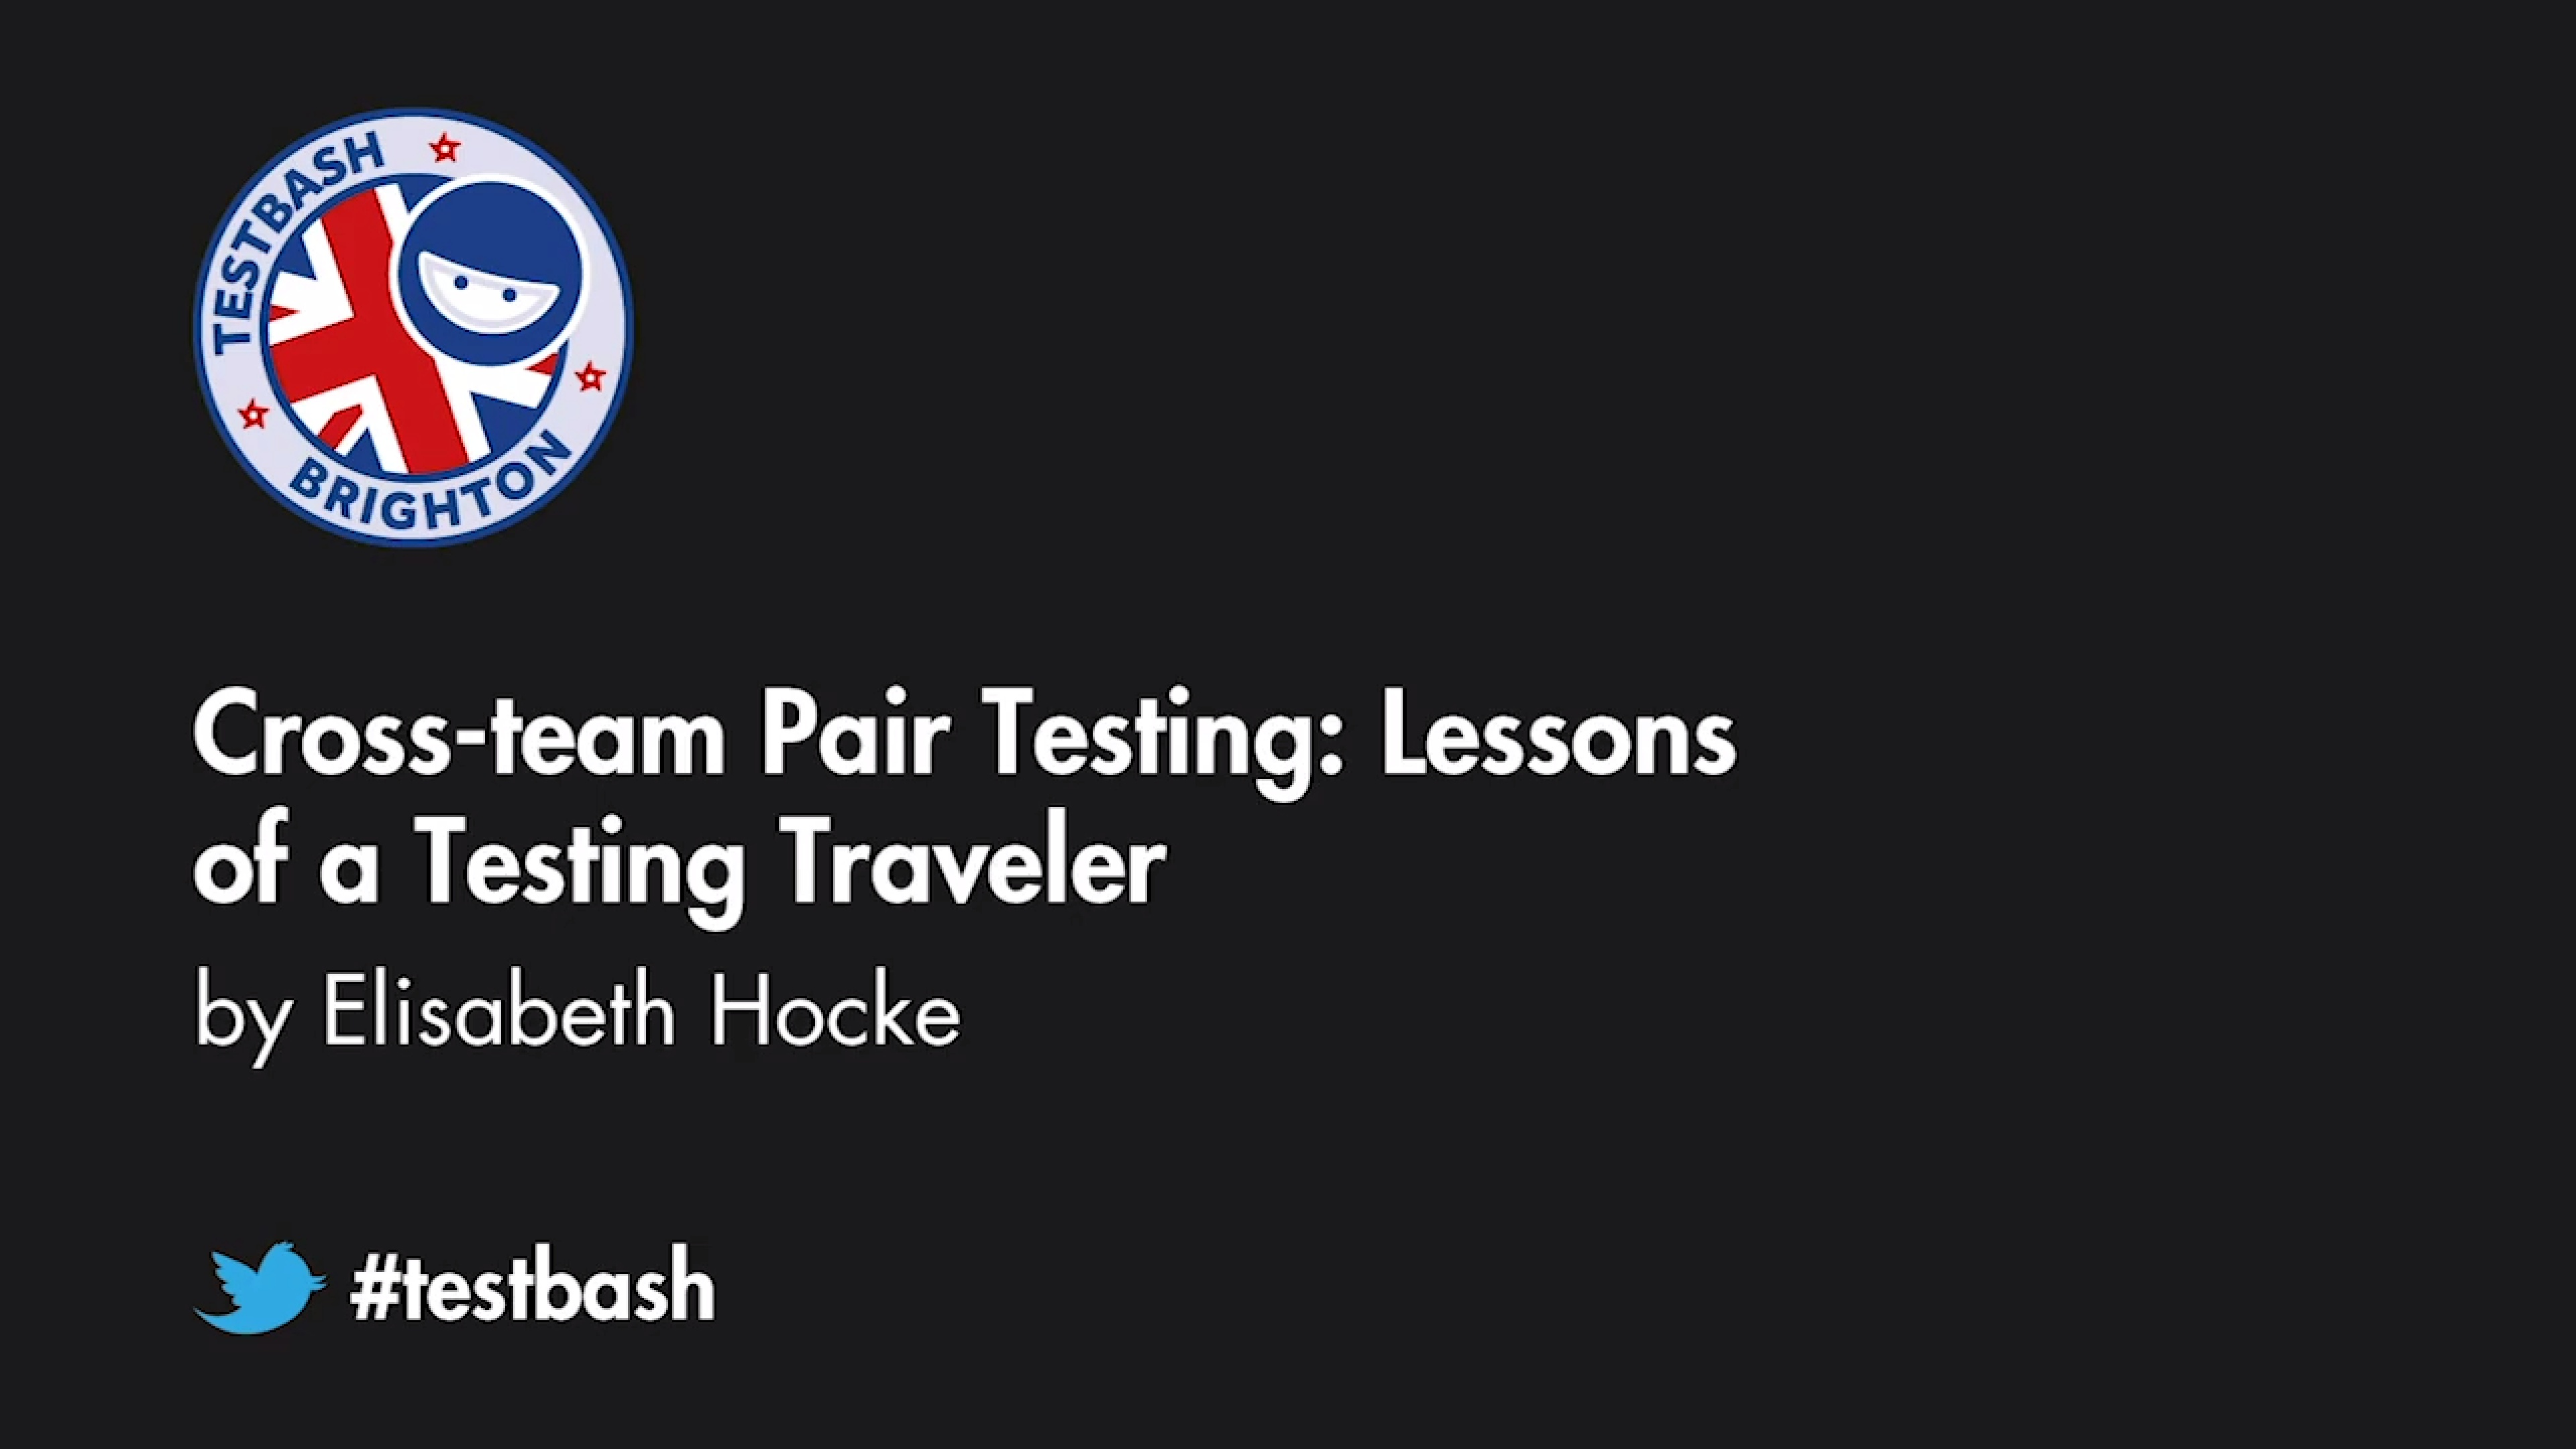 Cross-team Pair Testing: Lessons of a Testing Traveler - Elisabeth Hocke